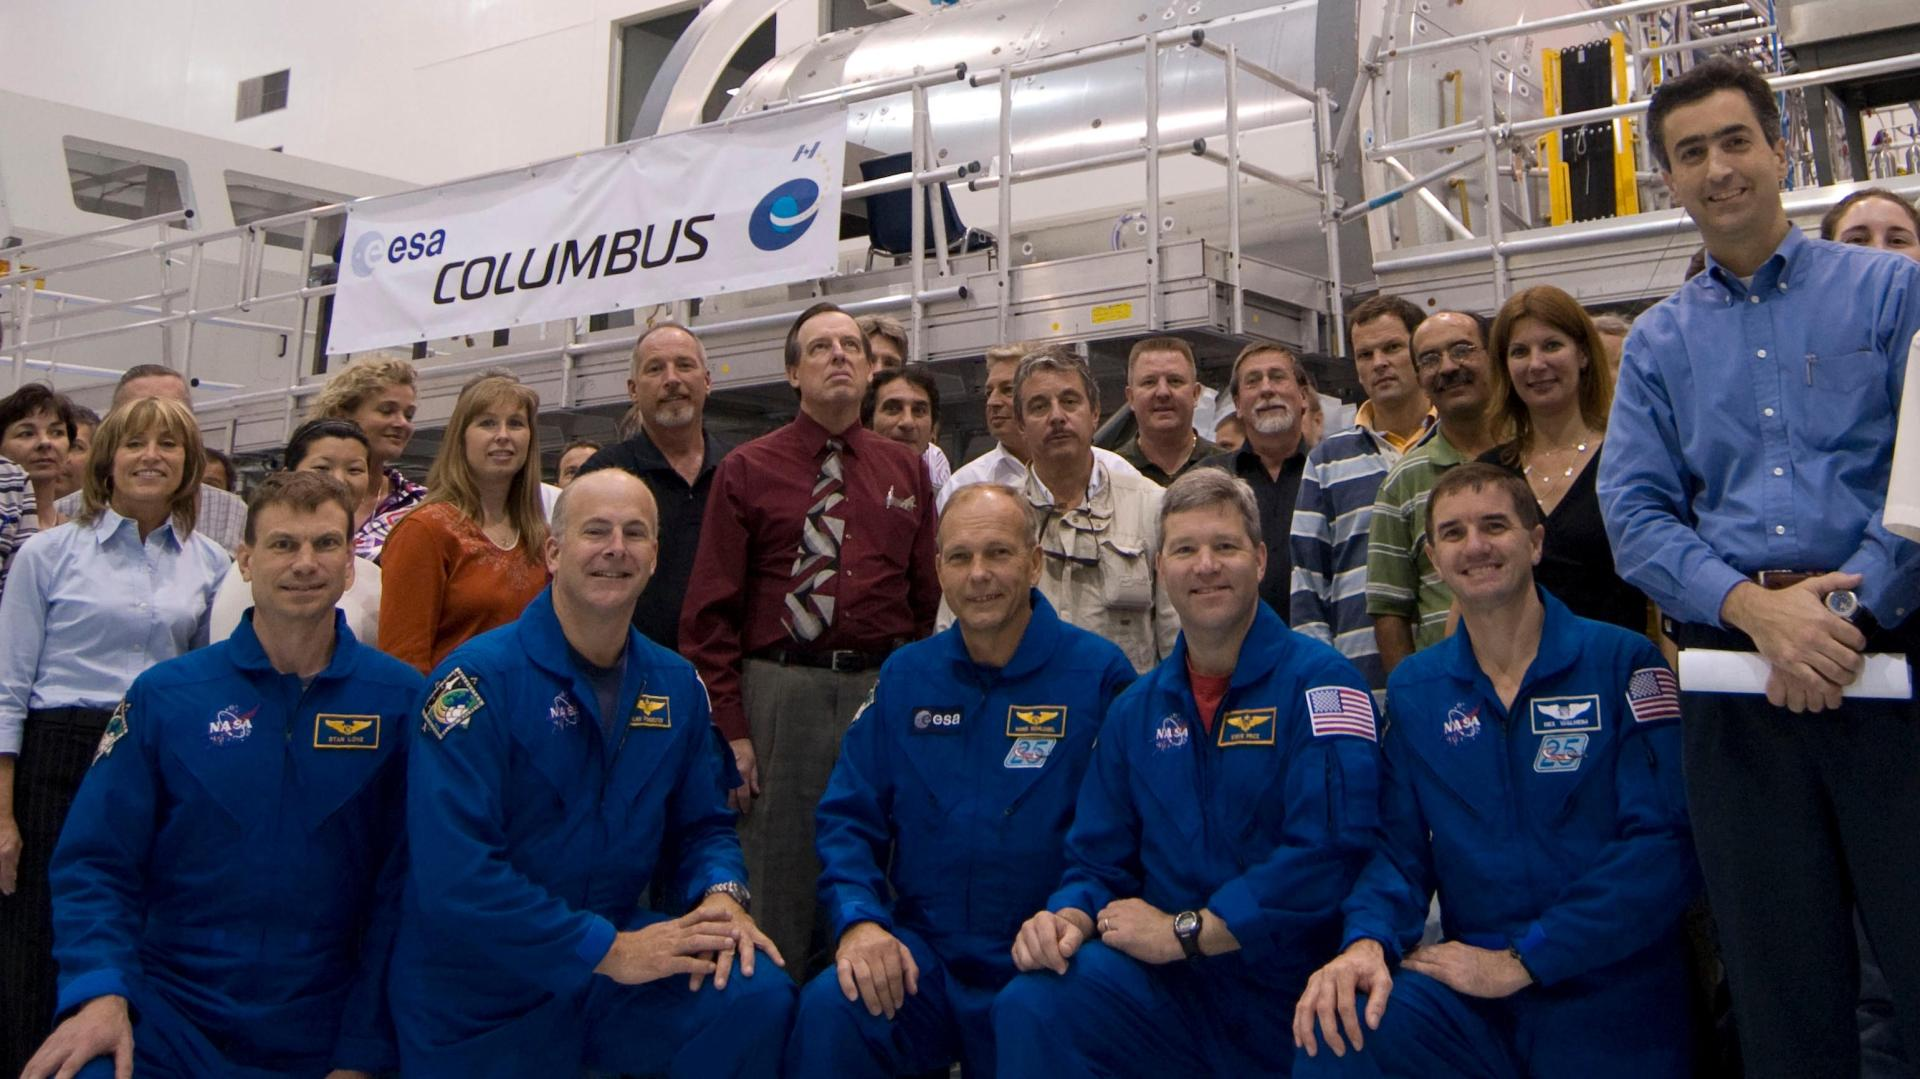 STS-122 astronauts (kneeling) and support team with the European Columbus laboratory